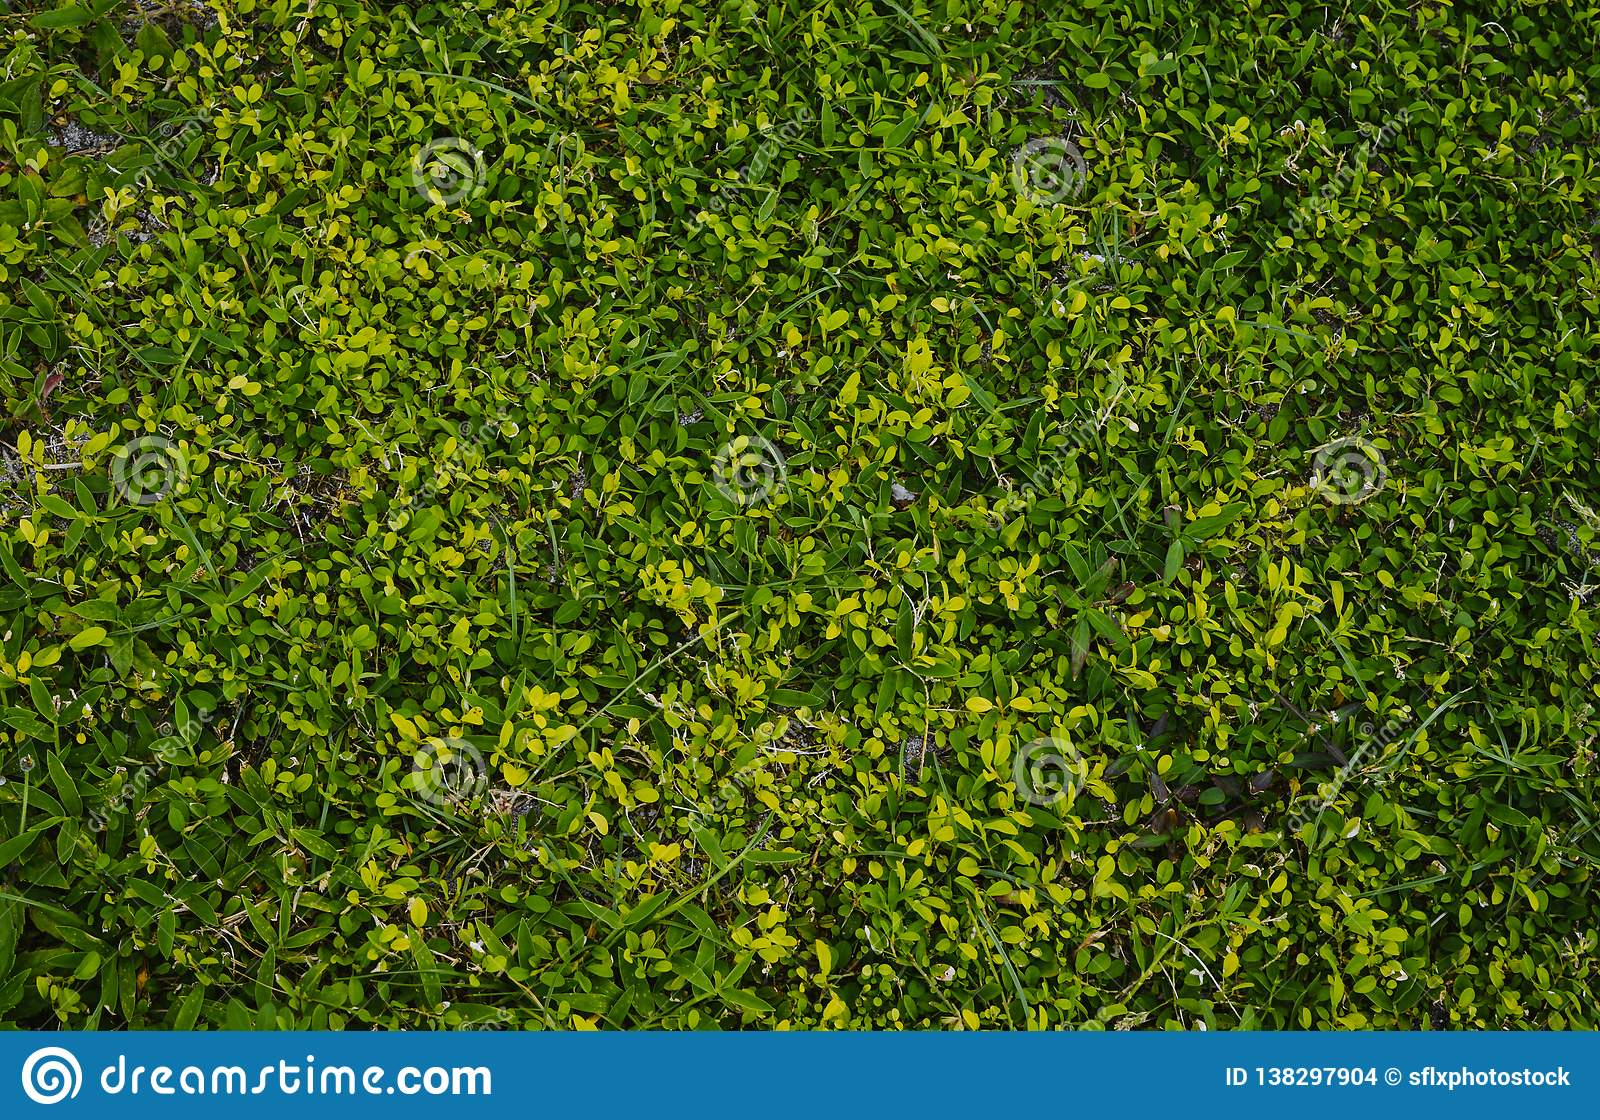 Grass texture with multiple shades of green